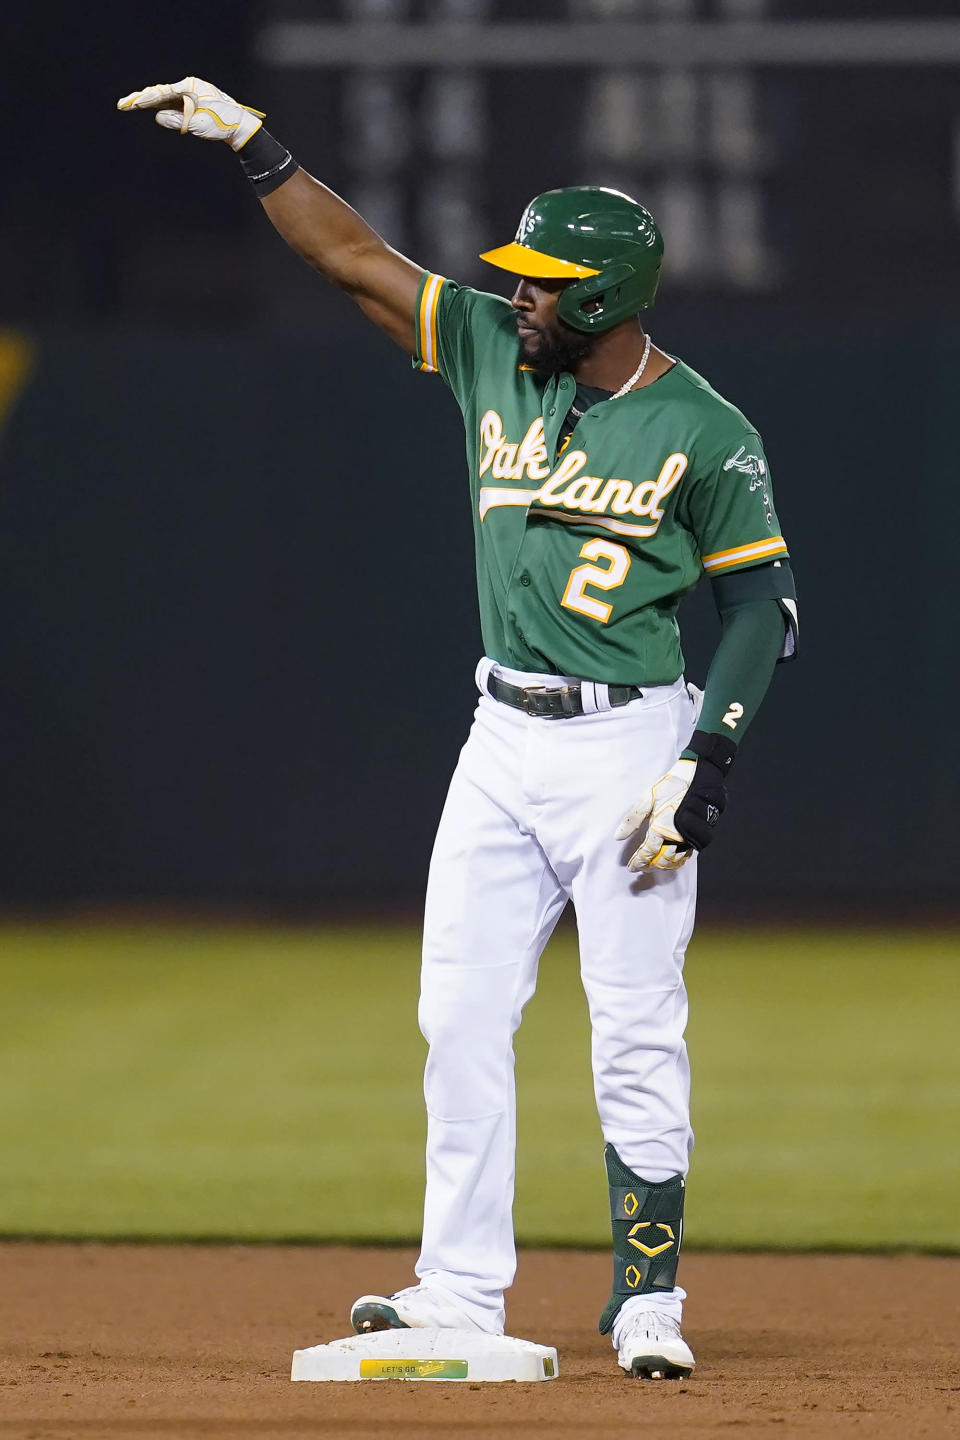 Oakland Athletics' Starling Marte gestures toward teammates after hitting an RBI double against the San Francisco Giants during the seventh inning of a baseball game in Oakland, Calif., Friday, Aug. 20, 2021. (AP Photo/Jeff Chiu)